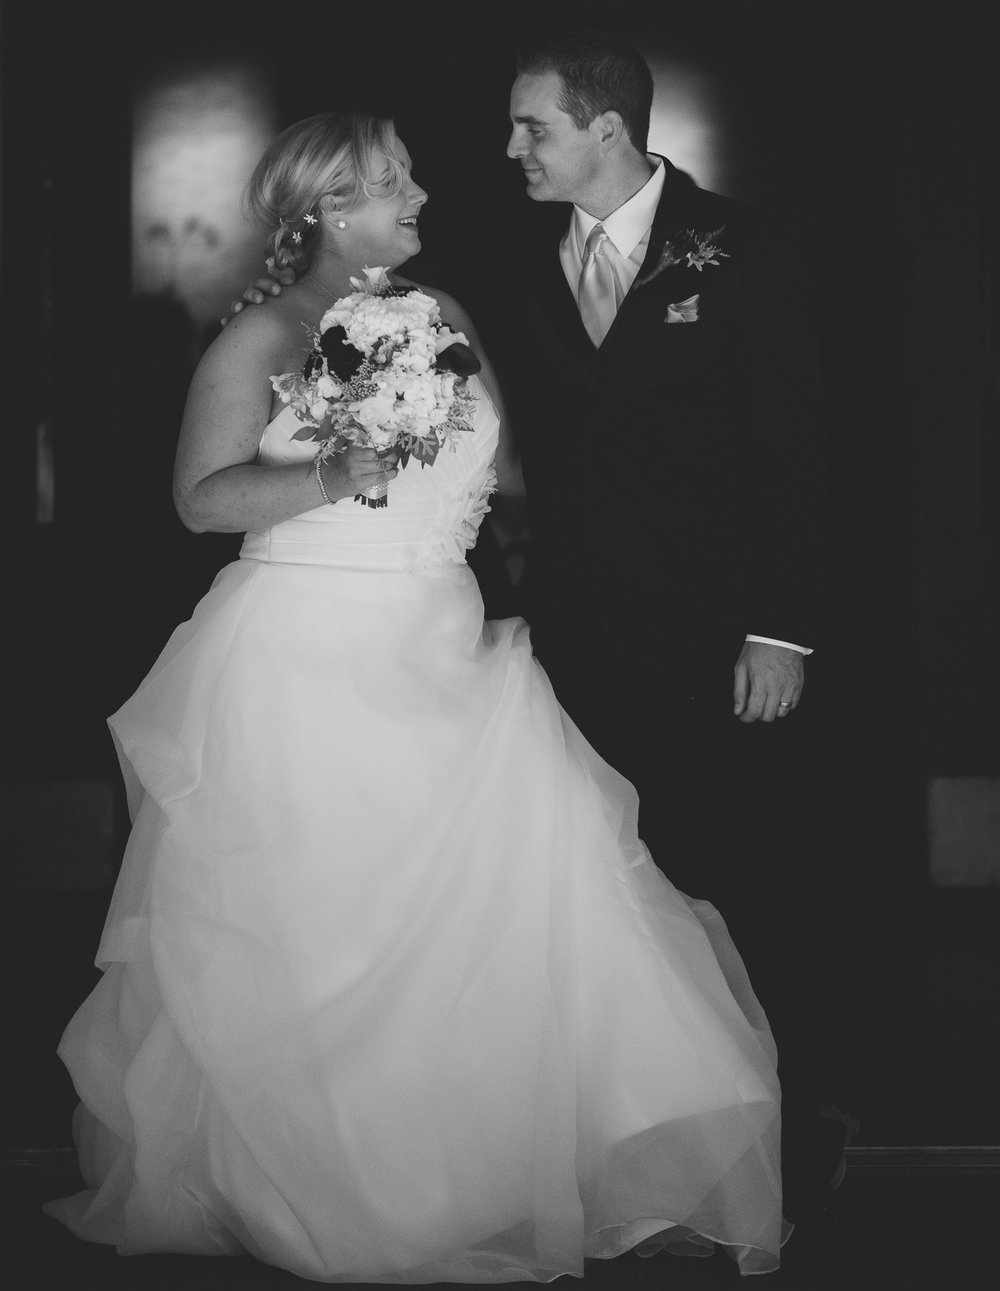 RyanStephanieWedding|selects-0026.jpg